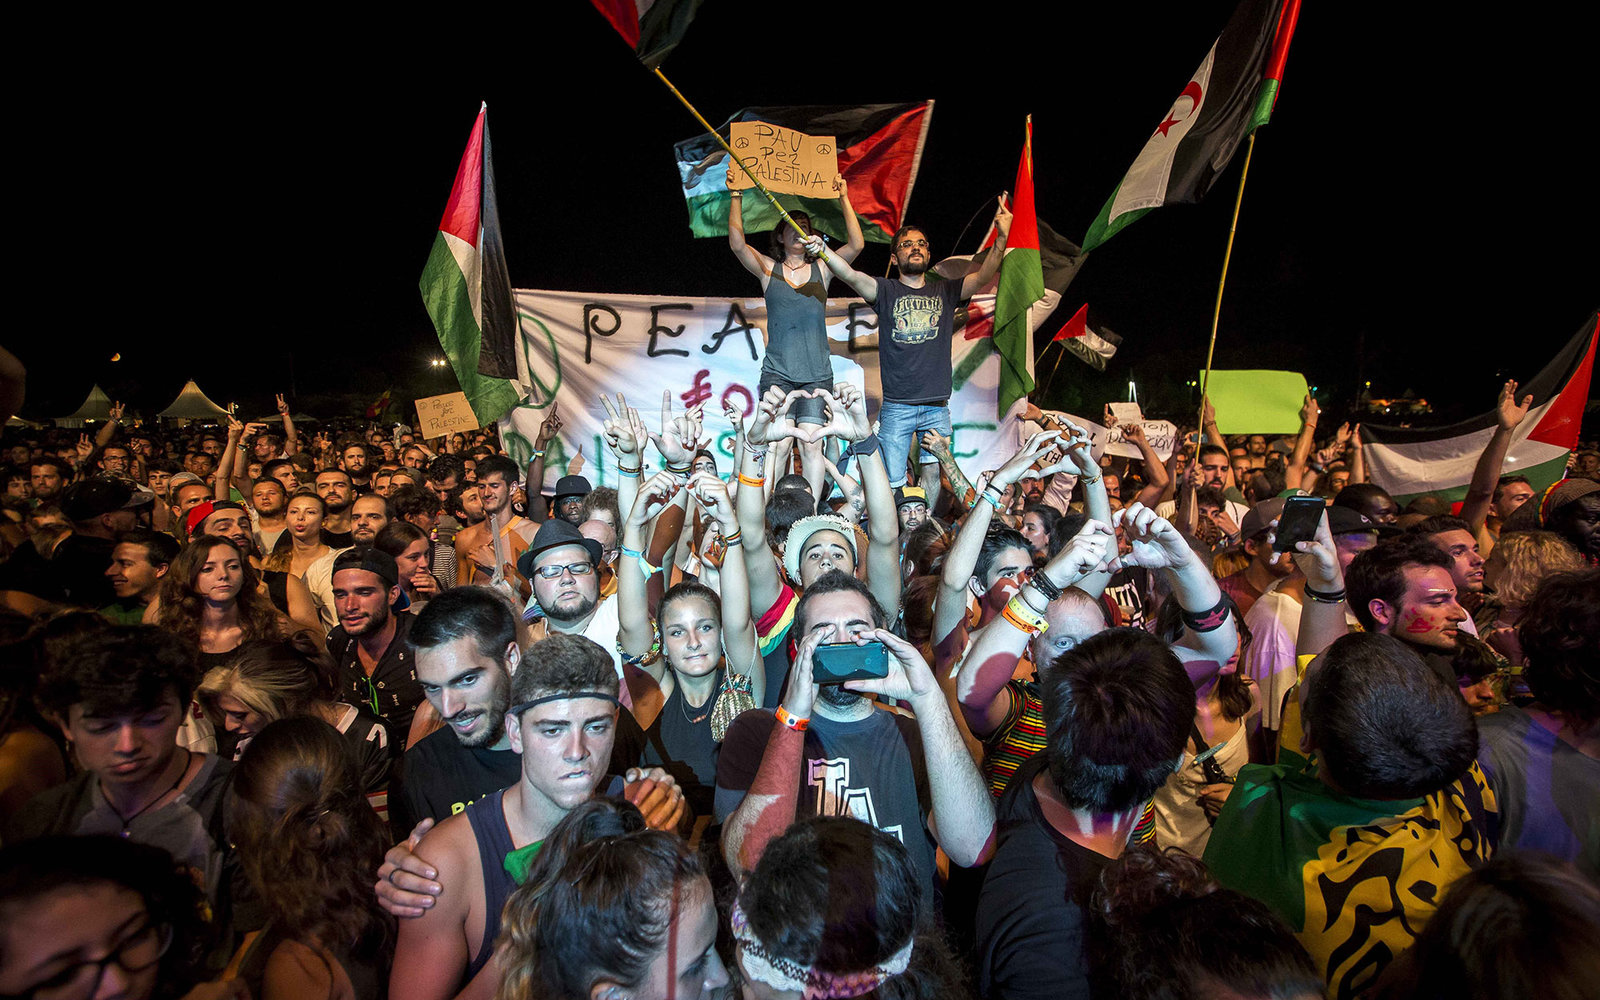 Revellers dance during a concert of Jewish American singer Matisyahu at the Rototom Sunsplash Reggae festival in Benicassim on August 22, 2015. Matisyahu confirmed his participation yesterday, two days after organisers apologised for pulling his show foll